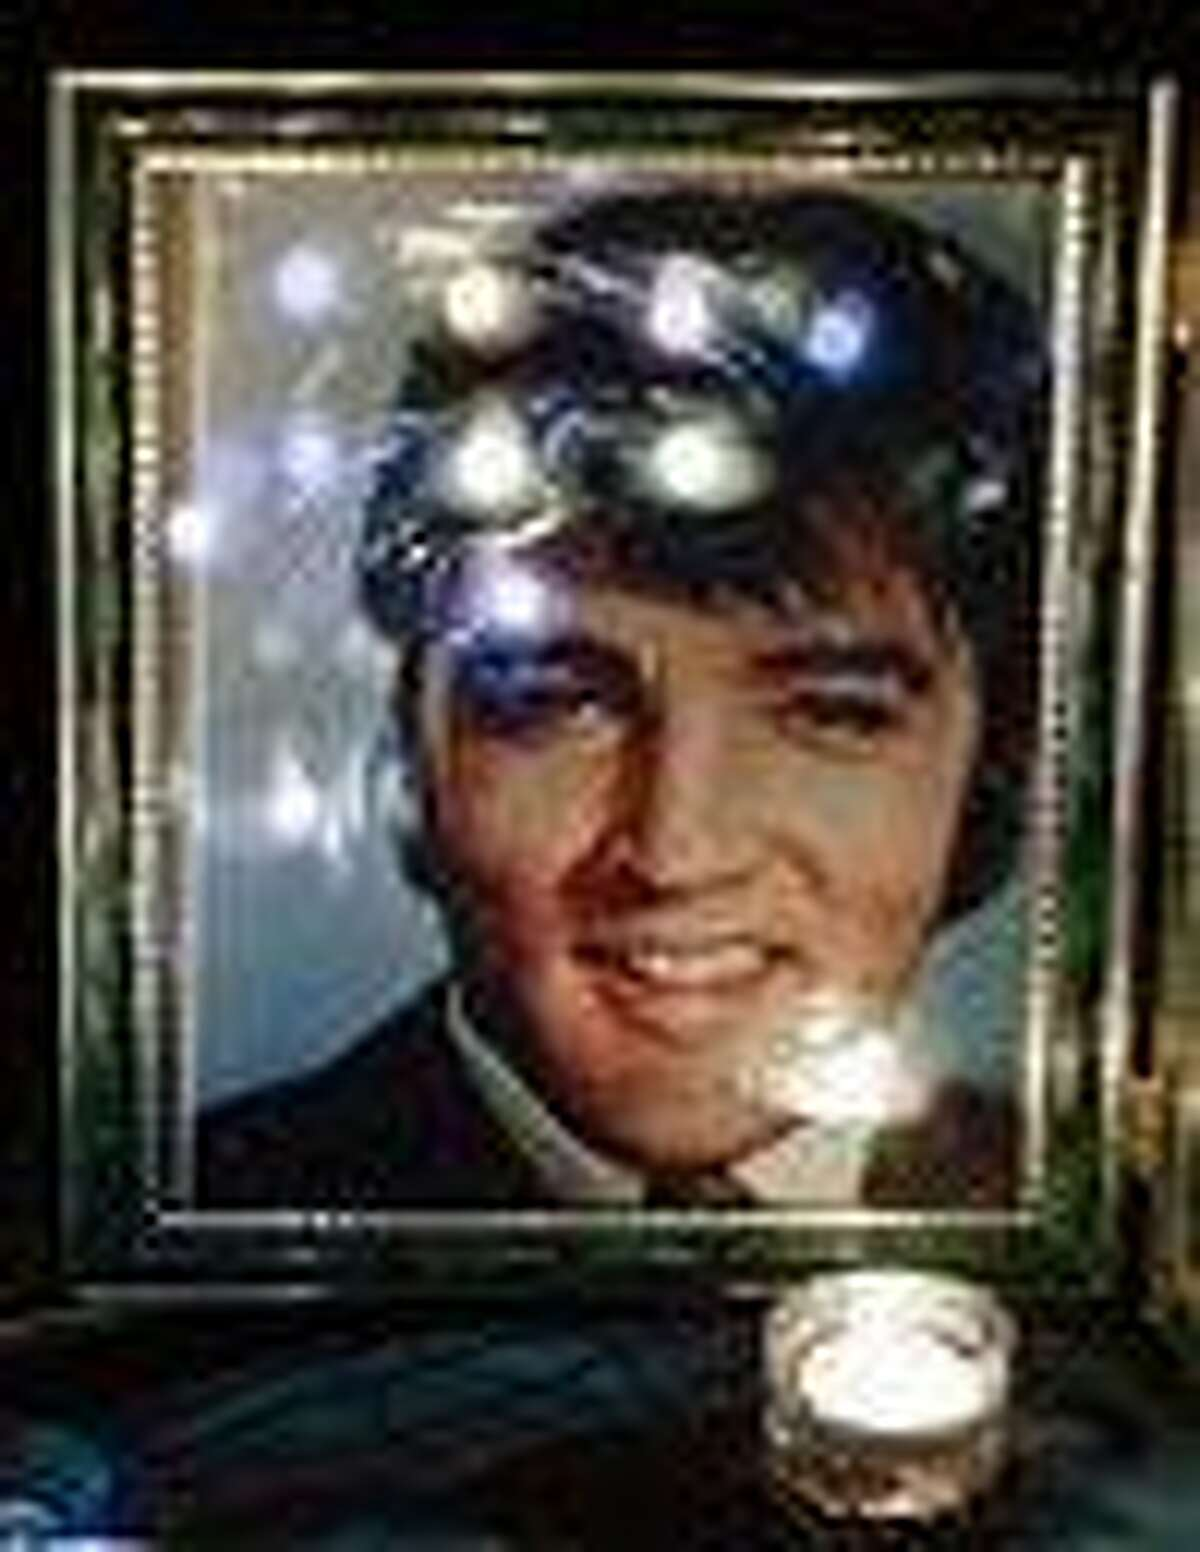 Candles are reflected in a photo of Elvis Presley at a memorial set up by a fan at a candlelight vigil at Graceland, Presley's Memphis, Tenn., home, on Wednesday. Fans from around the world are at Graceland to commemorate the 35th anniversary of Presley's death. (AP Photo/Mark Humphrey)